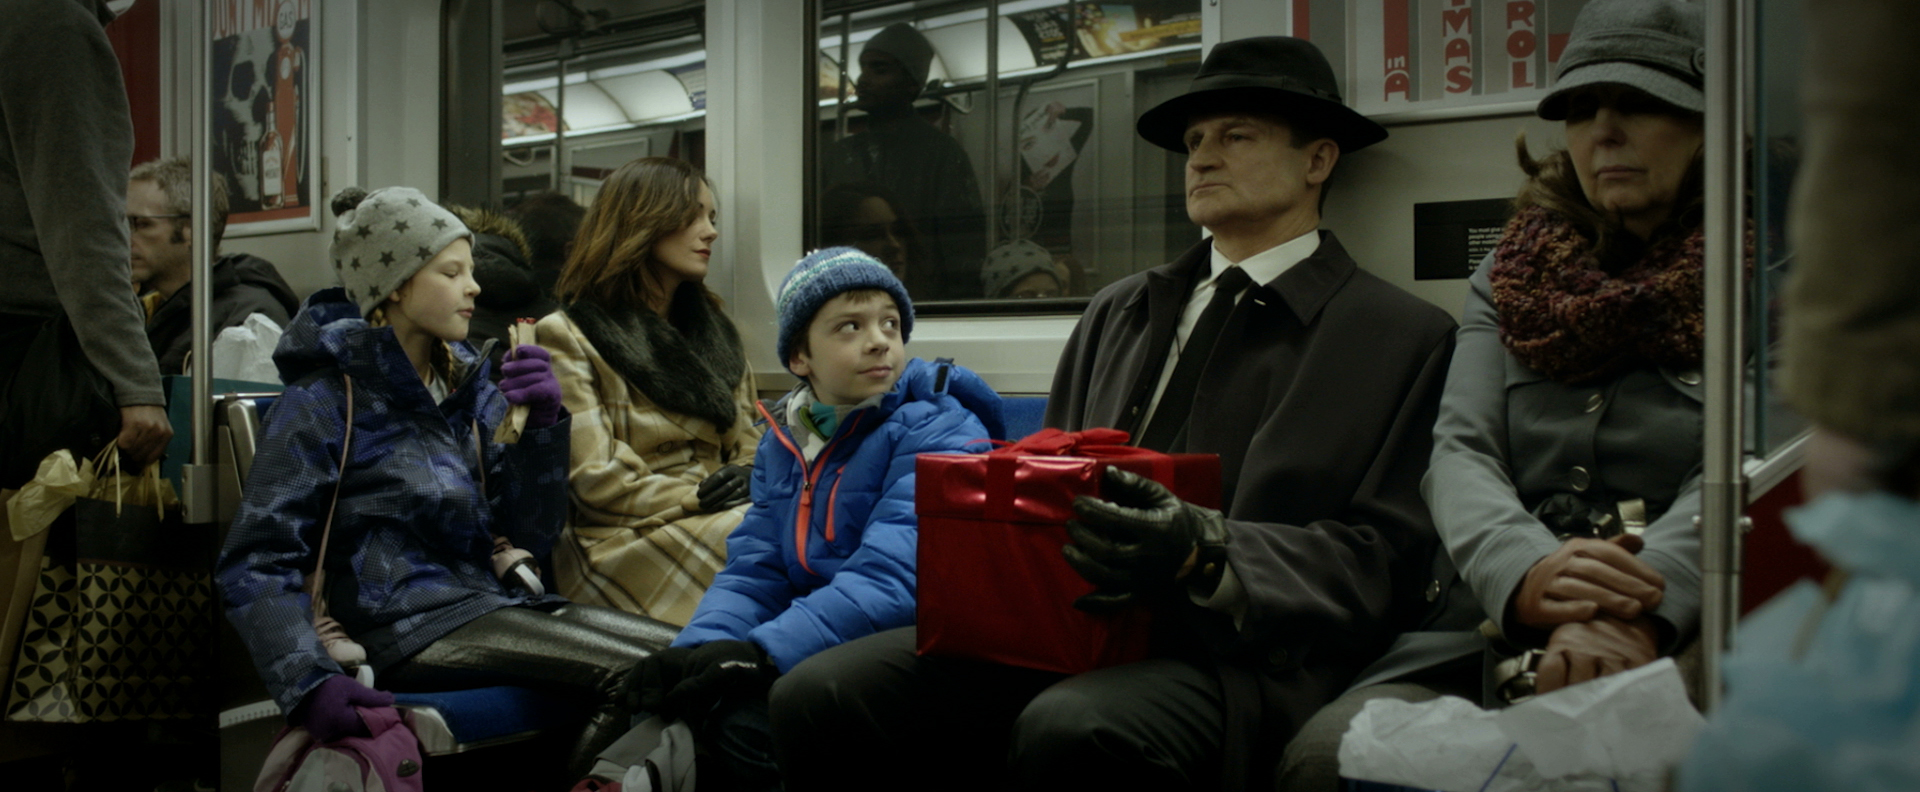 After peering into a shiny red gift box on a commuter train, seven-year-old Danny Jacobs inexplicably stops eating. When his father and sister also begin to waste away, Danny's mother Susan struggles to make the connection between herself, her dying family and the mysterious box before it's too late.